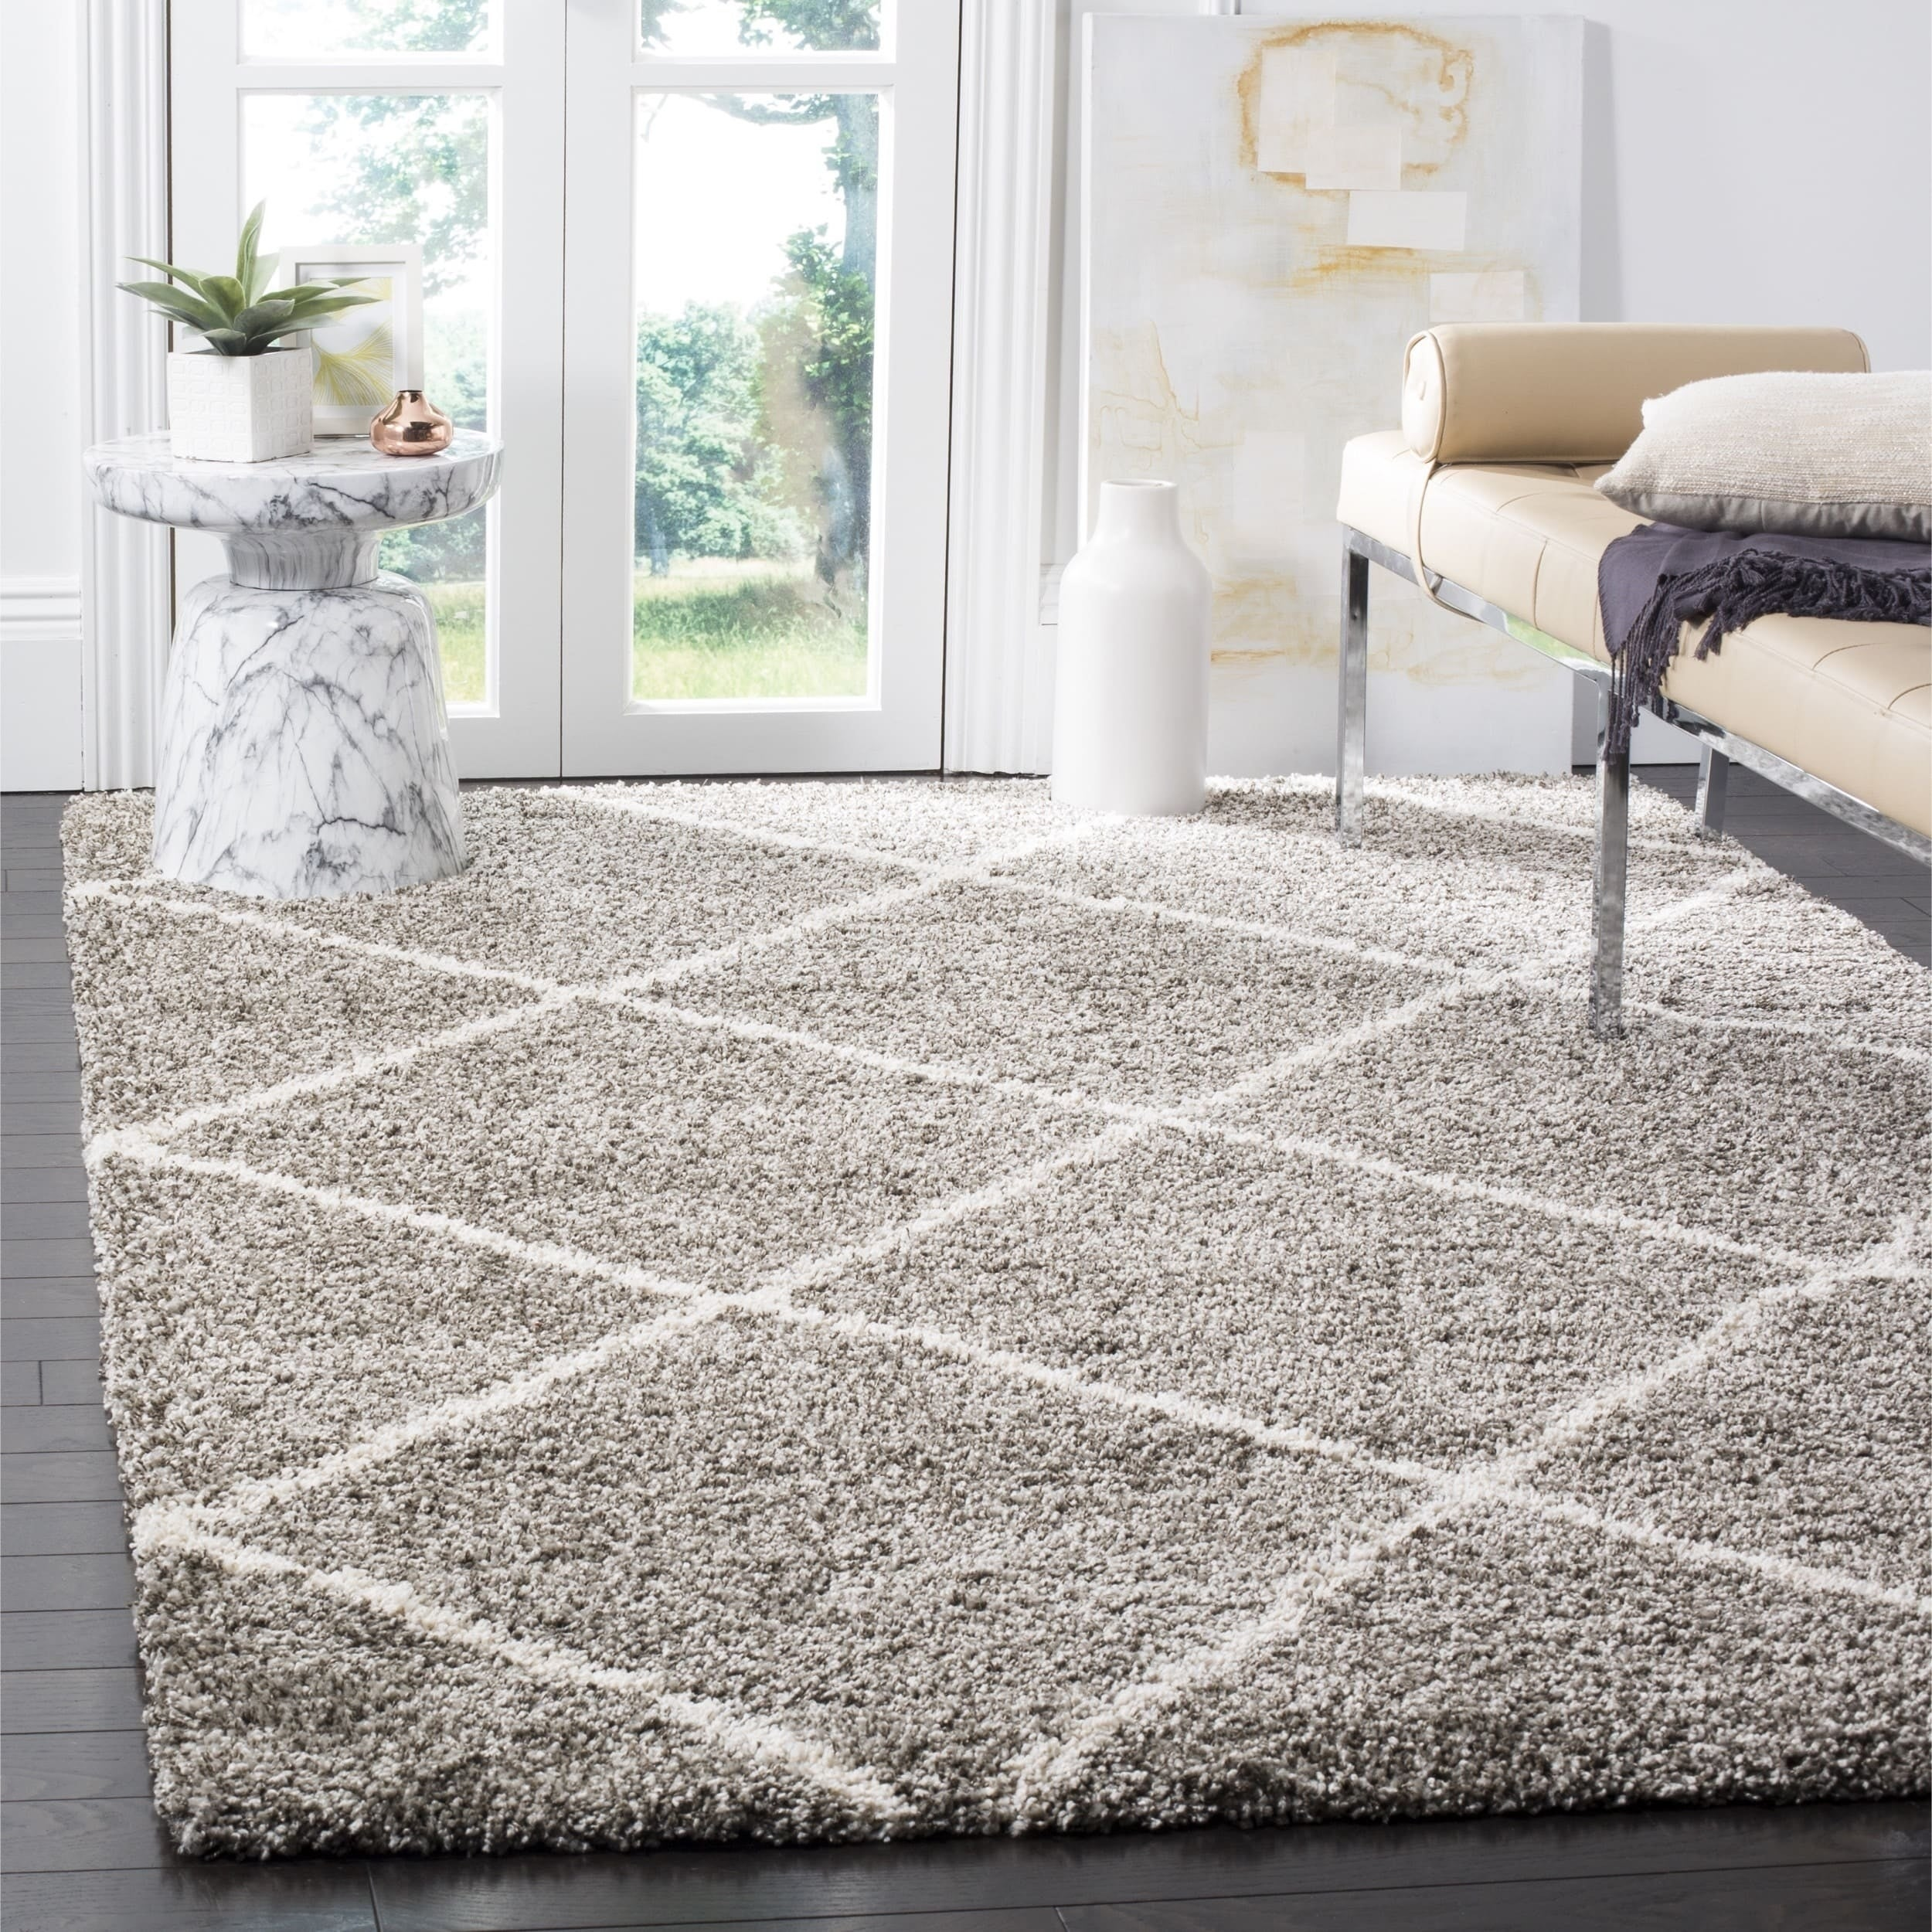 Safavieh Hudson Diamond Grey Ivory Large Area Rug 11 X 15 On Free Shipping Today 10464278